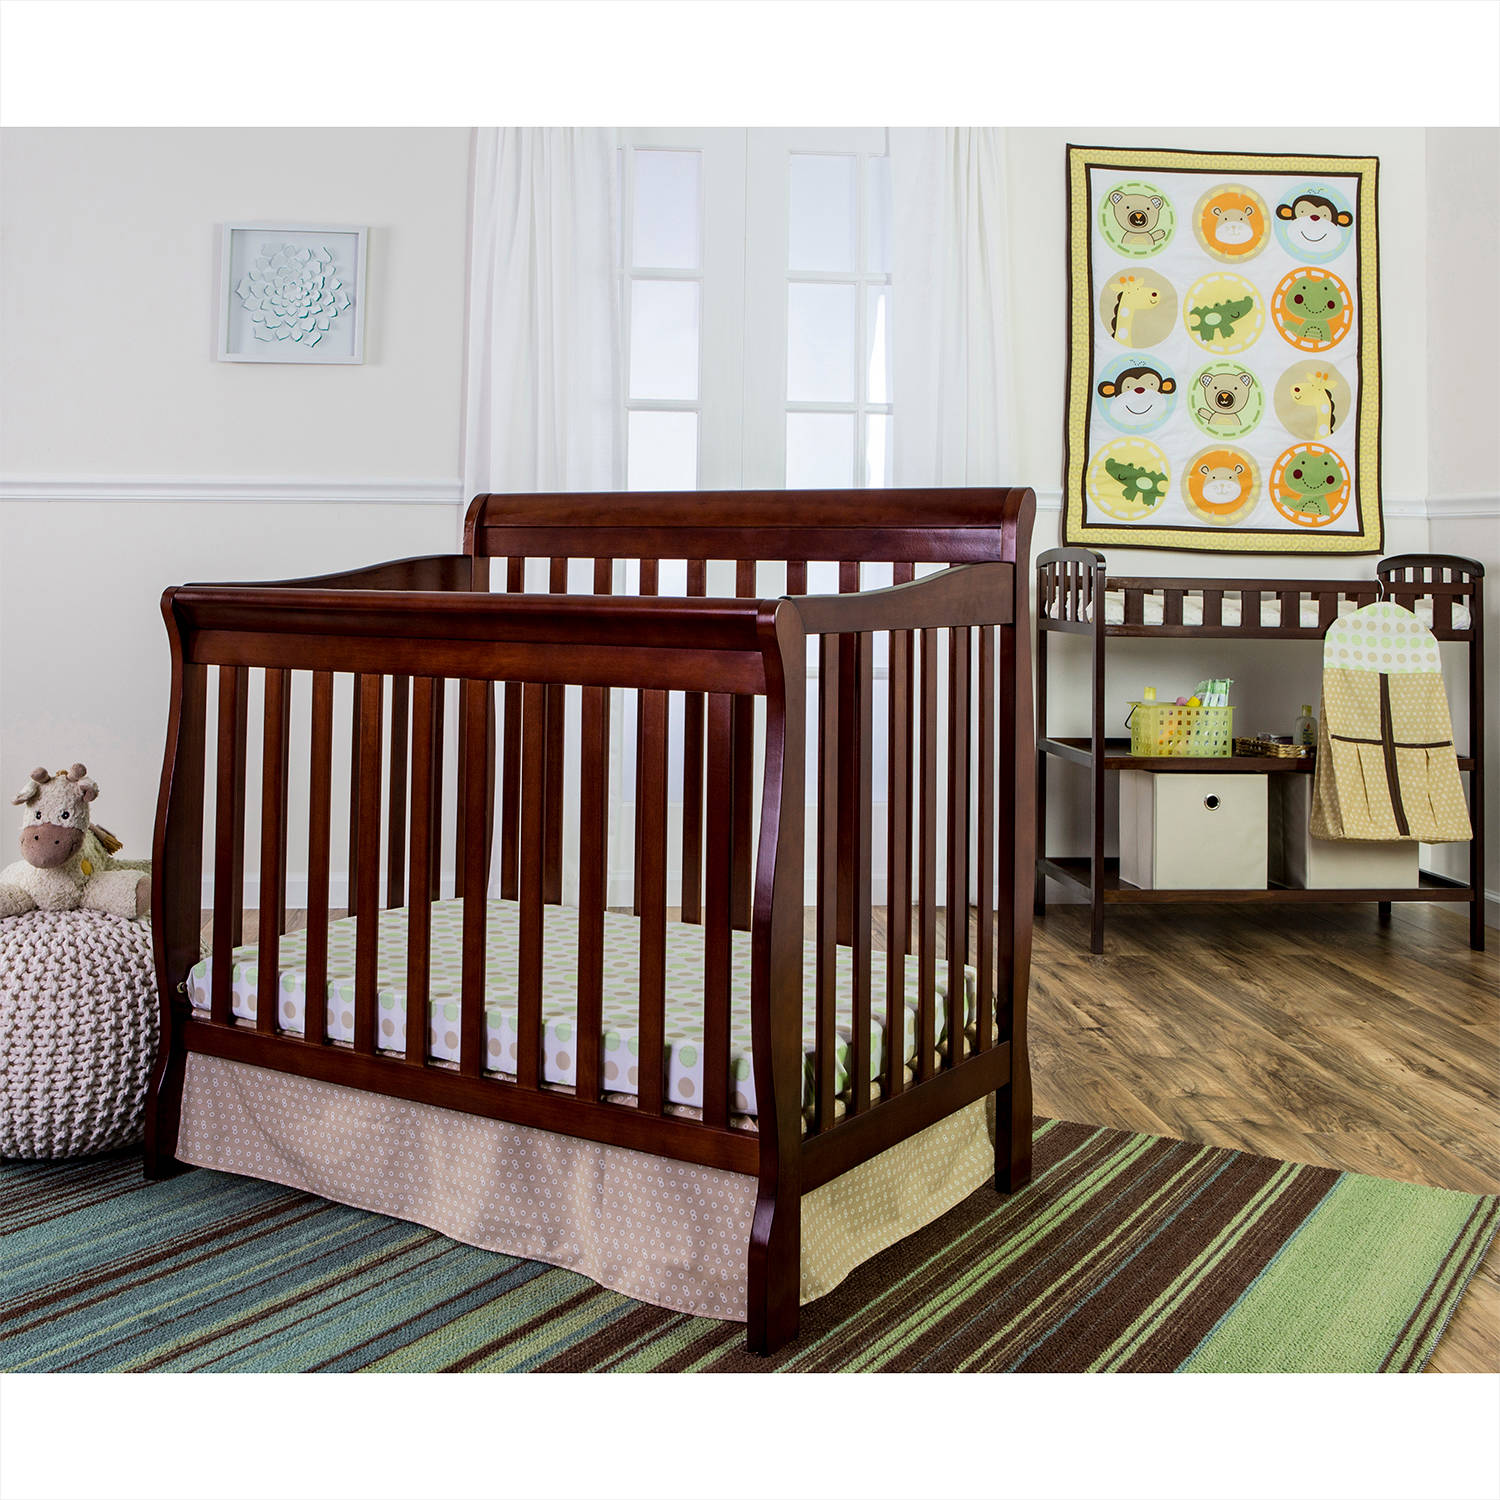 Dream On Me Animal Kingdom 4-Piece Reversible Portable Crib Bedding Set